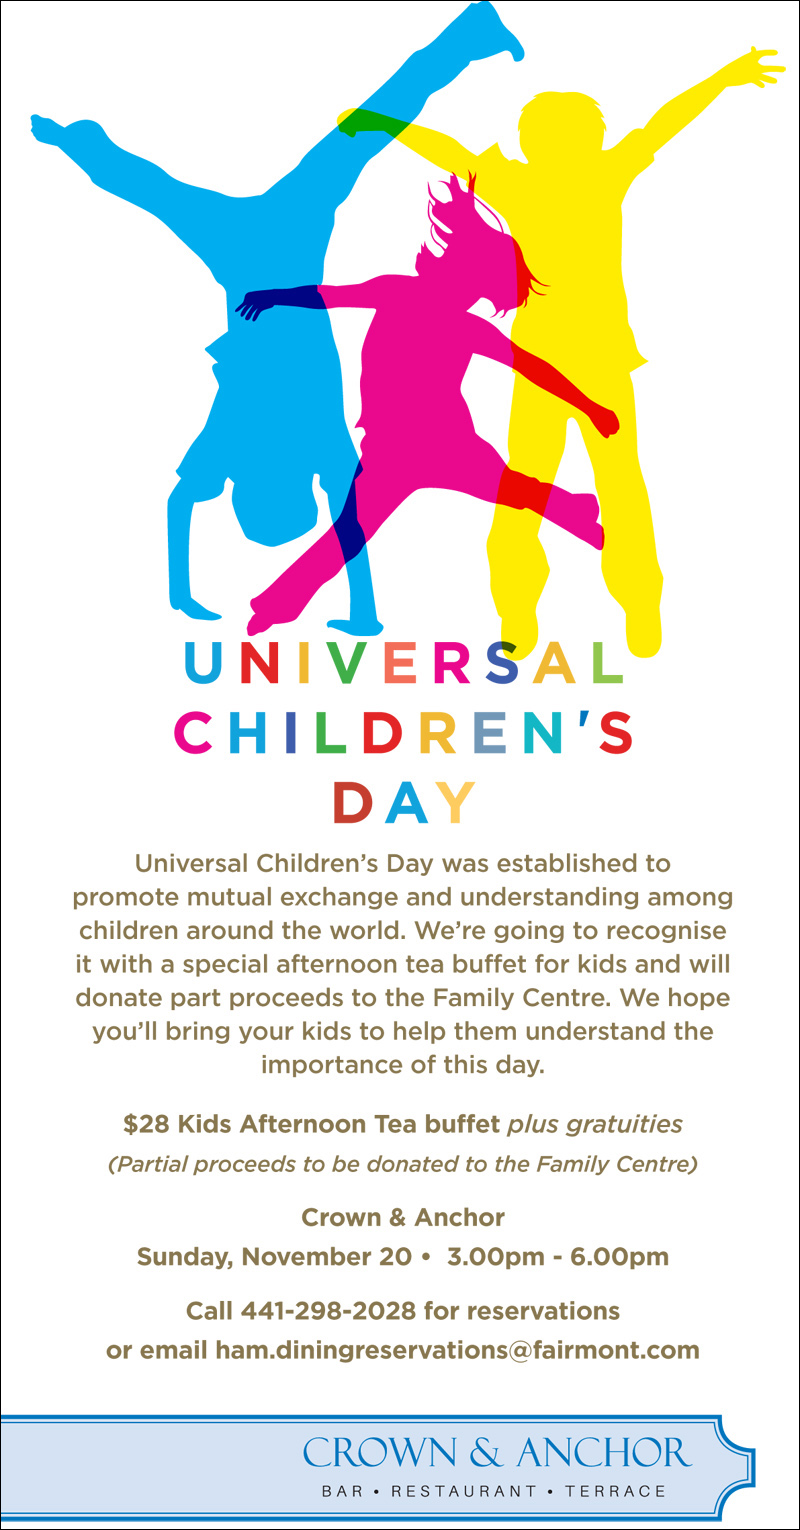 Kid's Afternoon Tea Buffet Bermuda November 2016